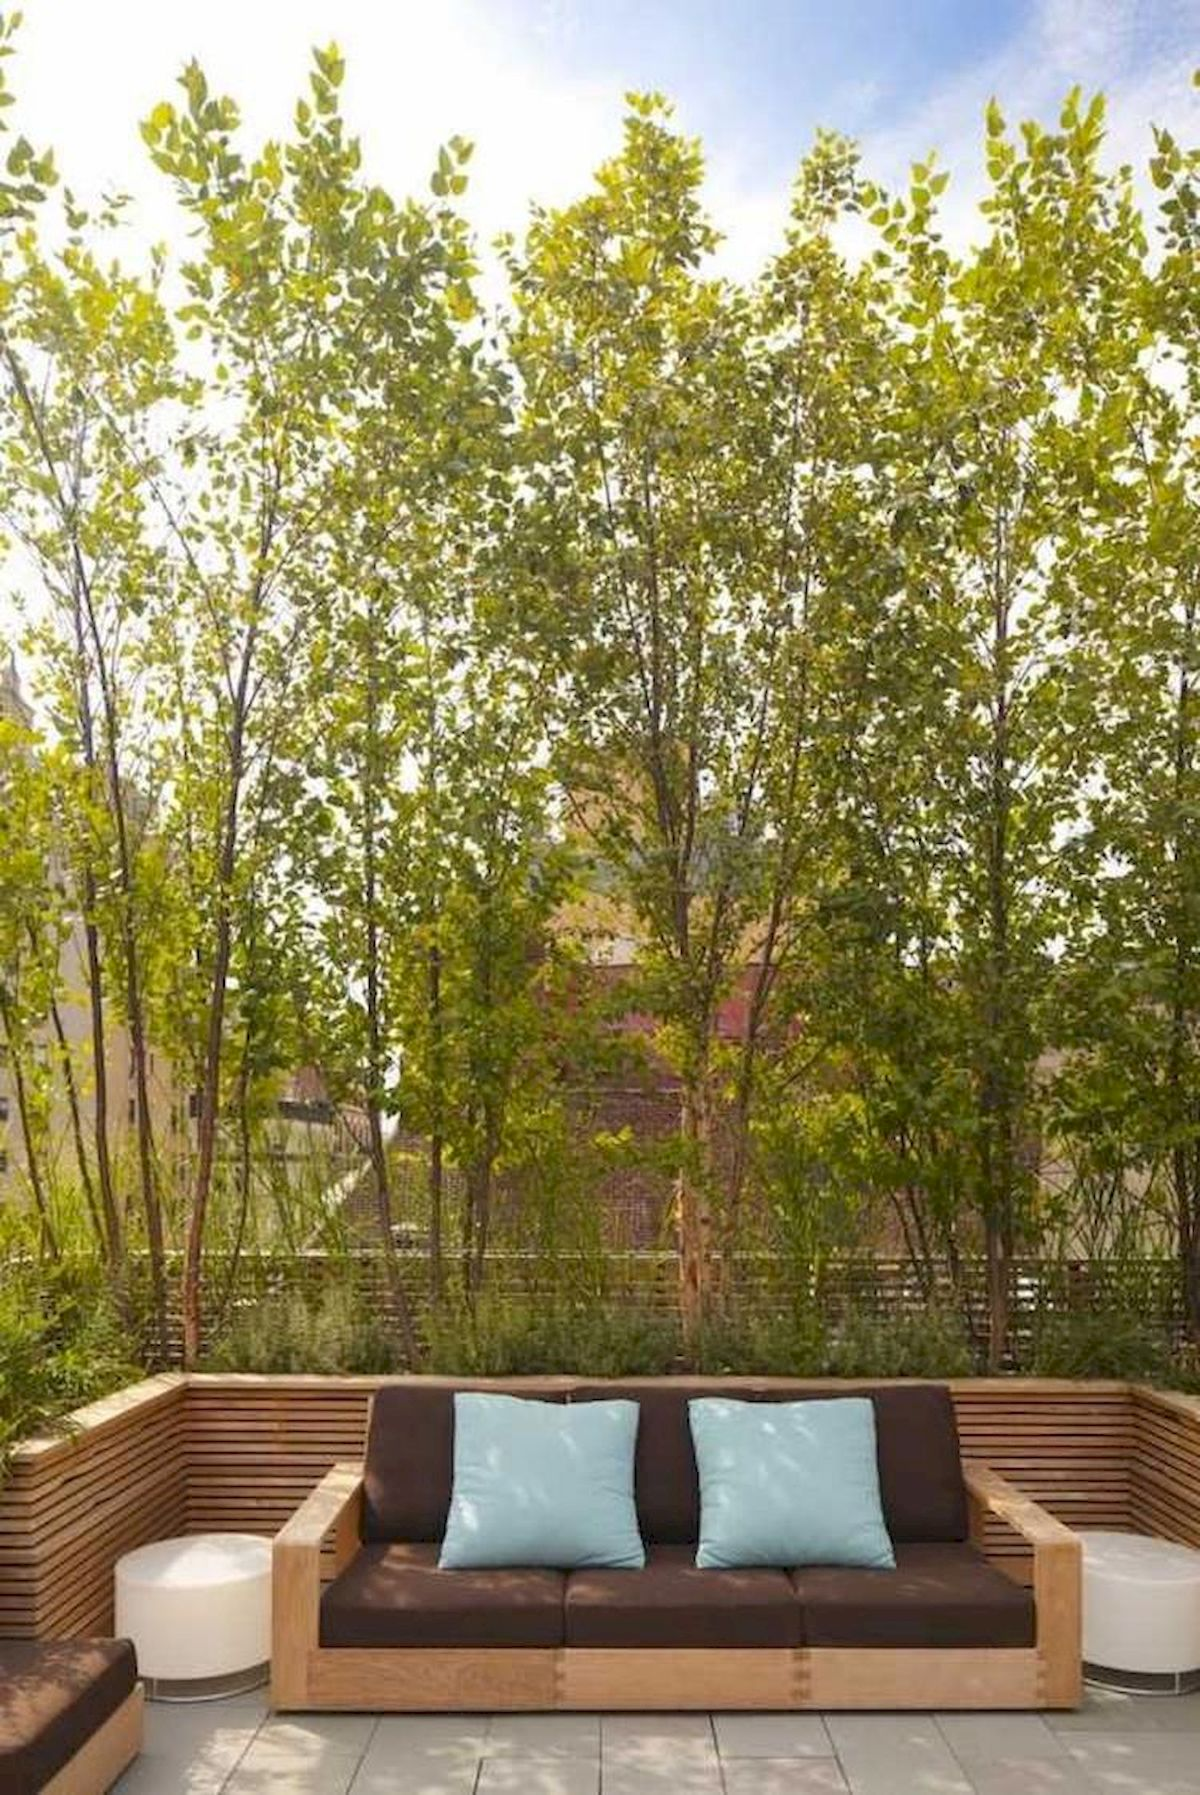 60 Awesome Backyard Privacy Design and Decor Ideas (43)